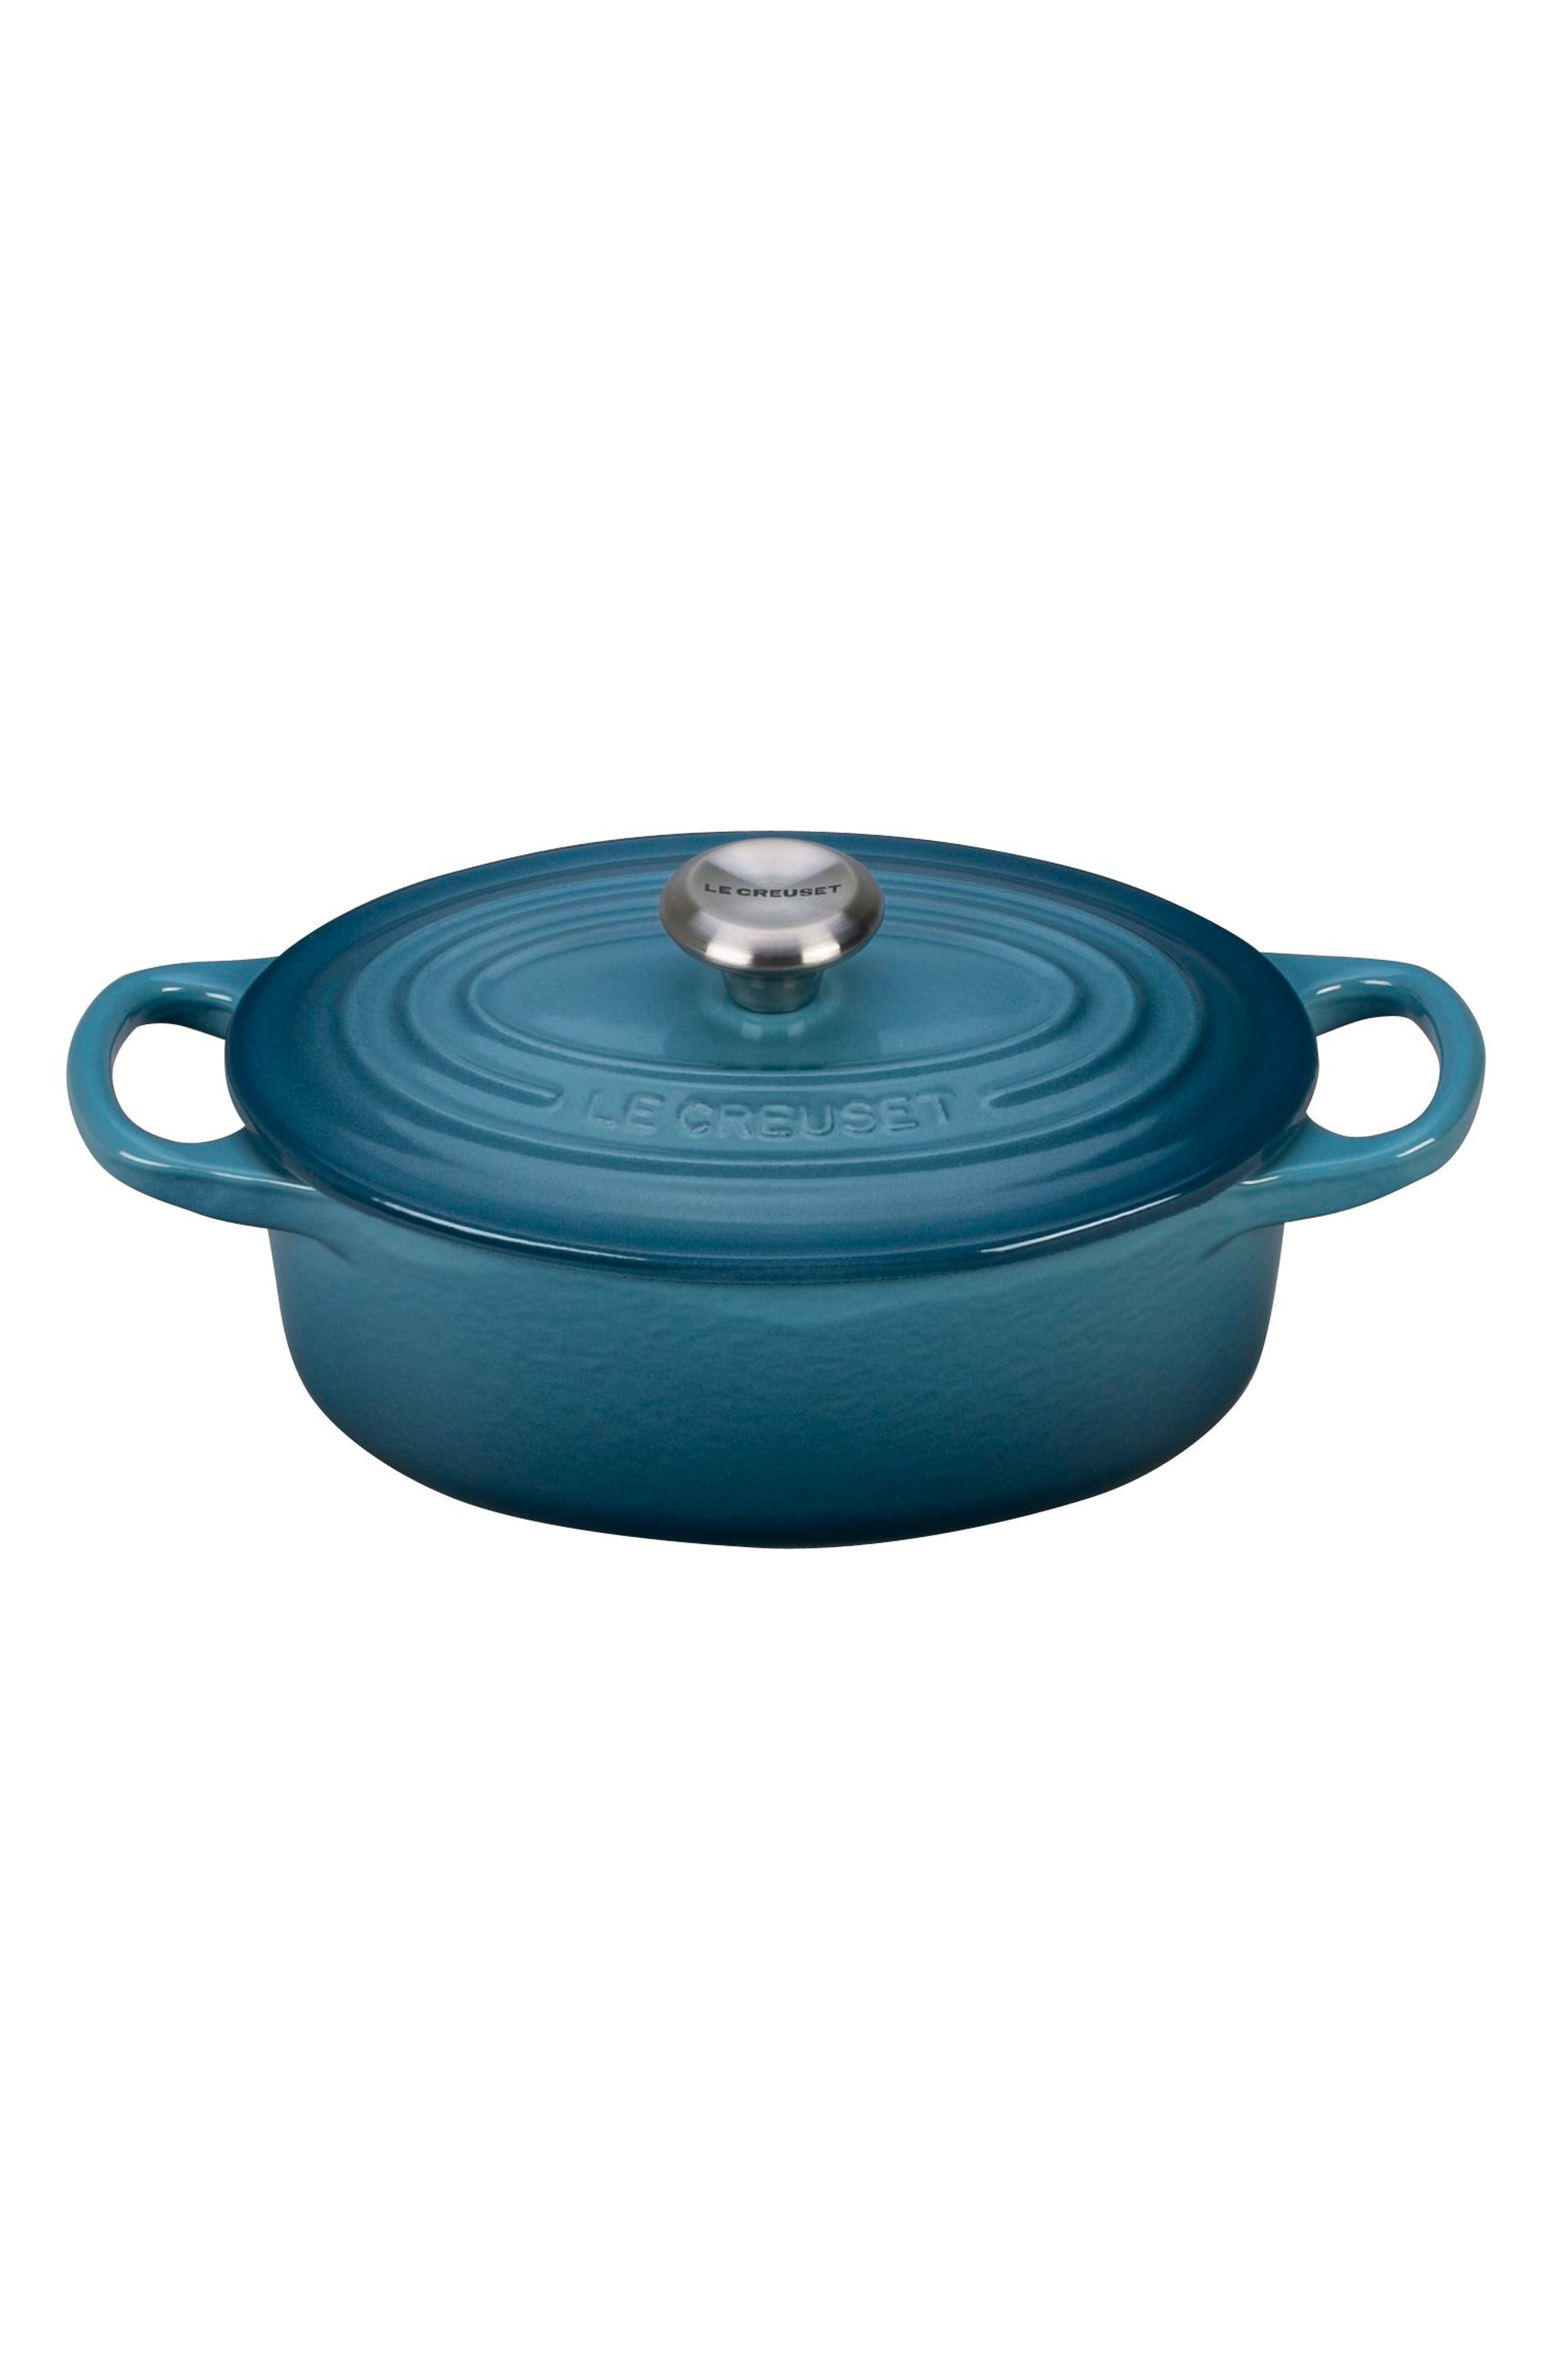 Signature 1-Quart Oval Enamel Cast Iron French/Dutch Oven,                         Main,                         color, MARINE